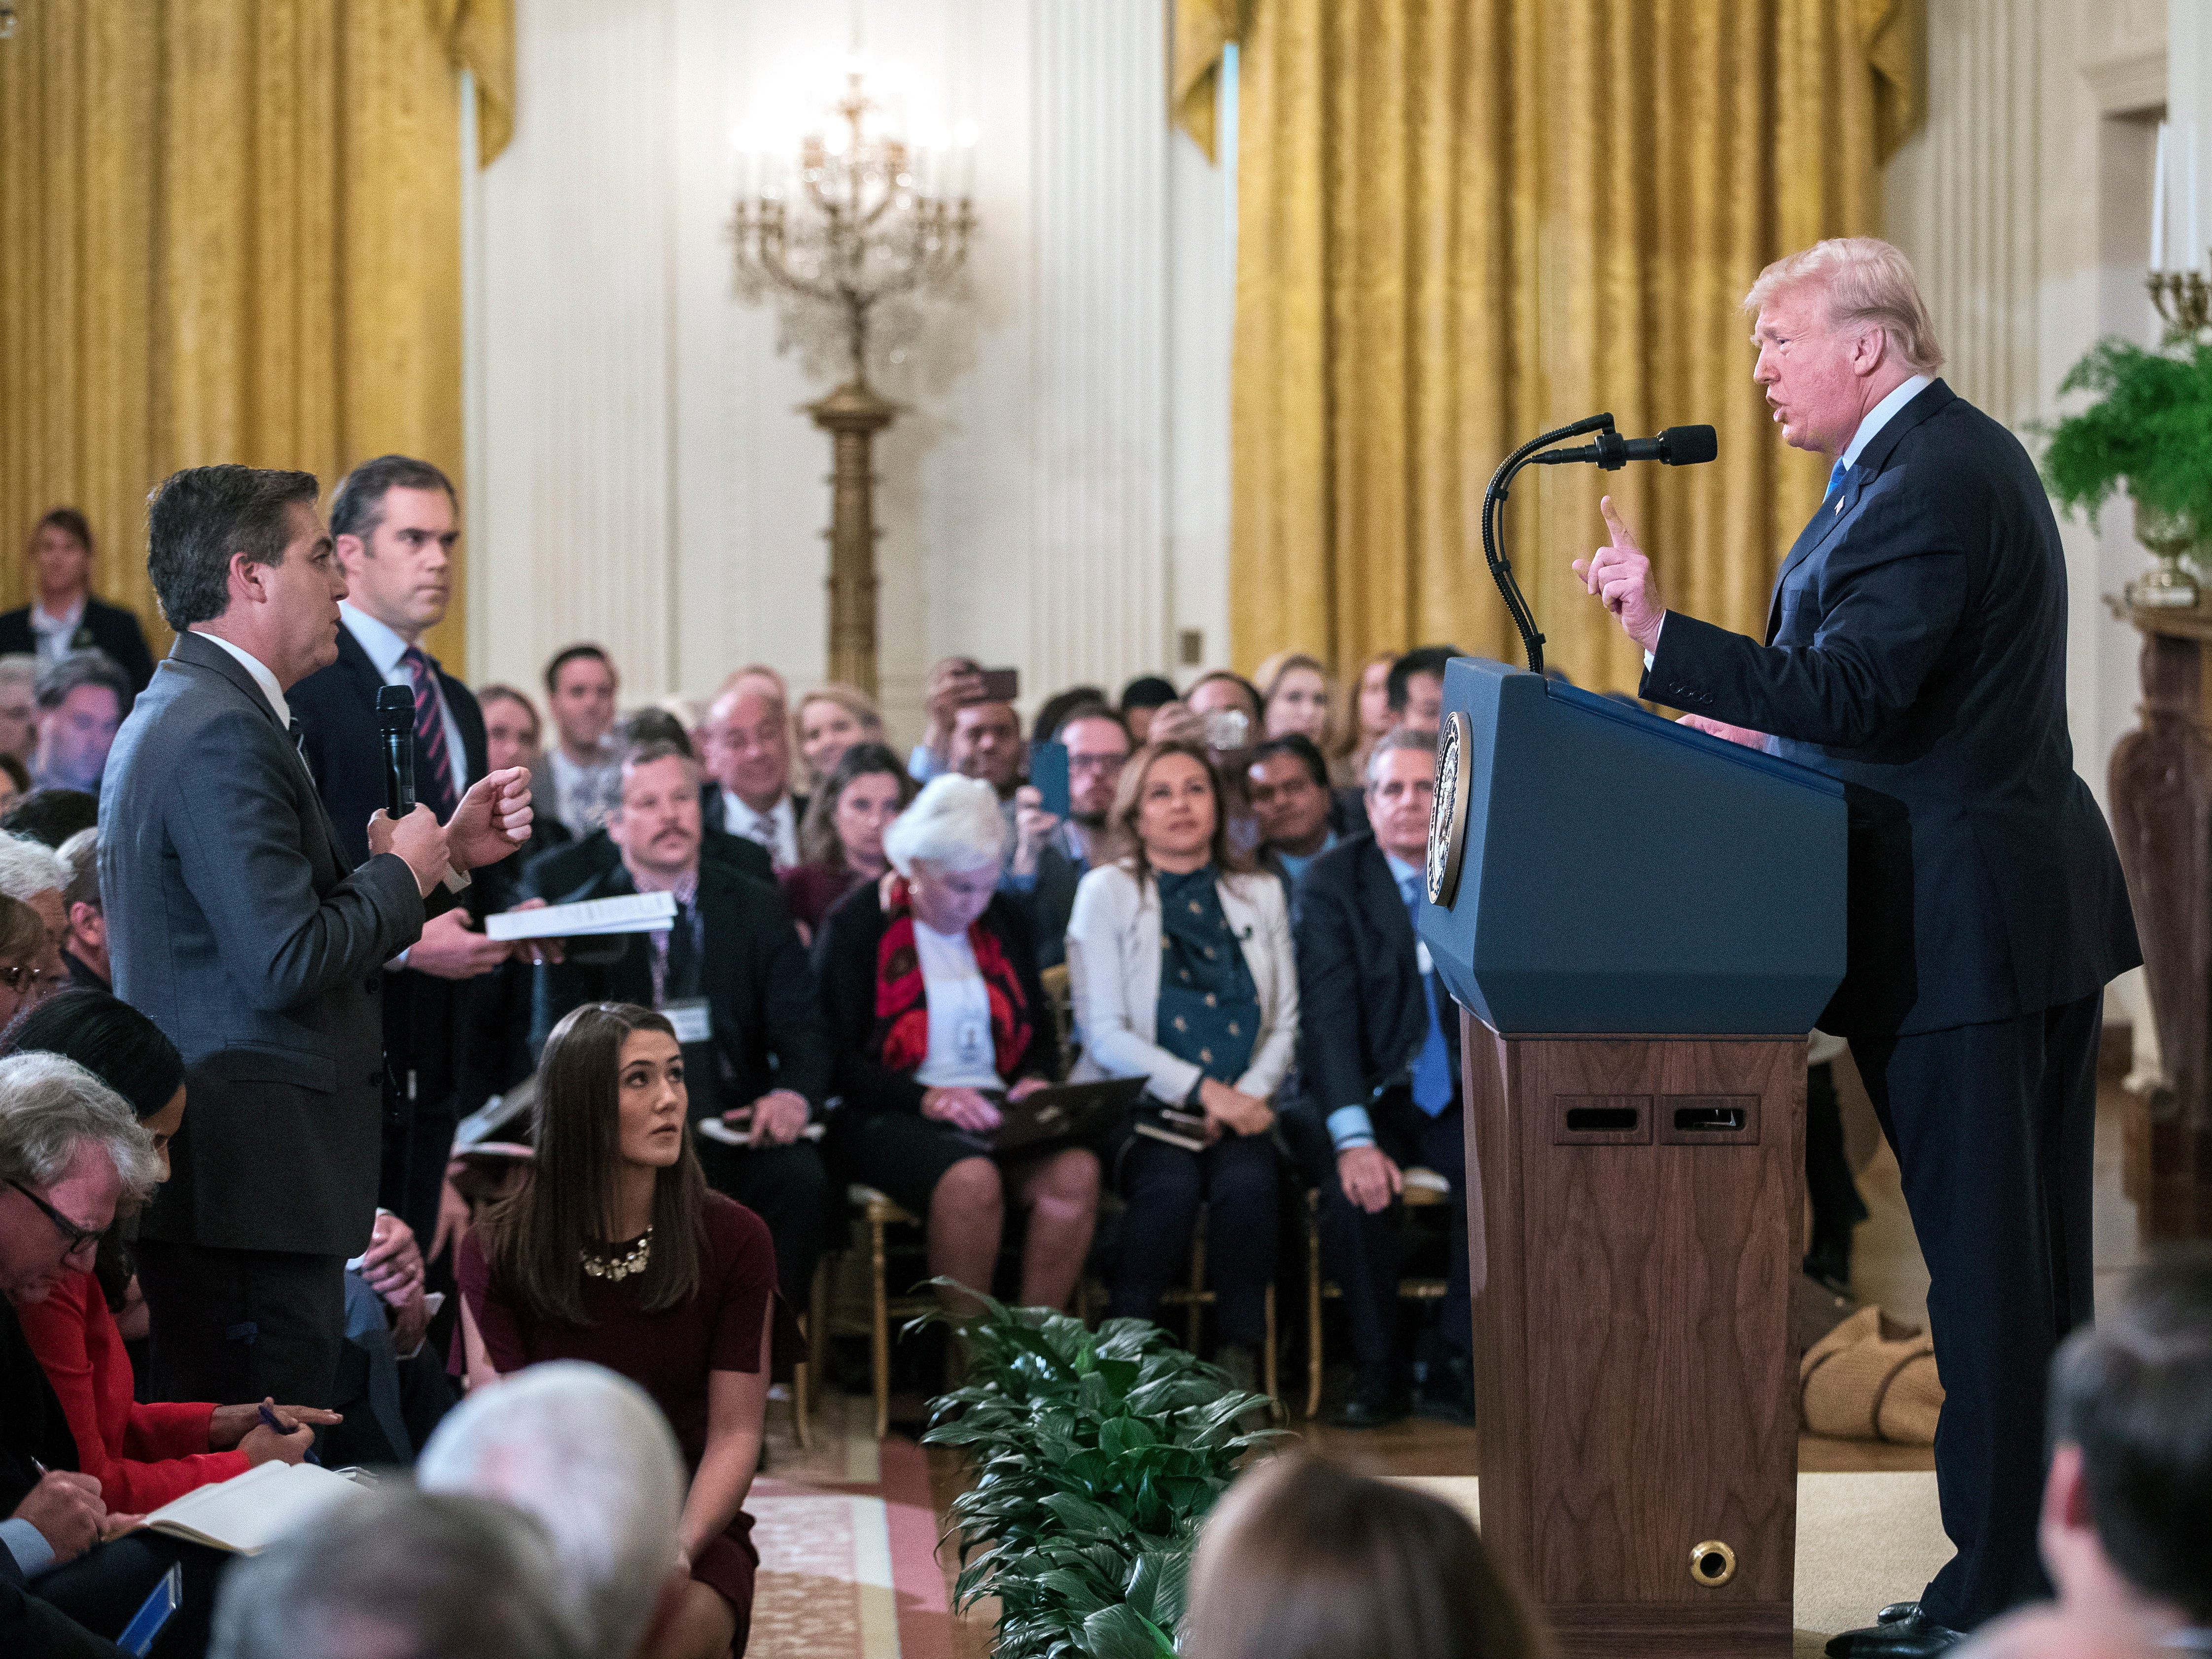 Acosta's legacy: Kill the lights, shut off the cameras, reform White House press corps